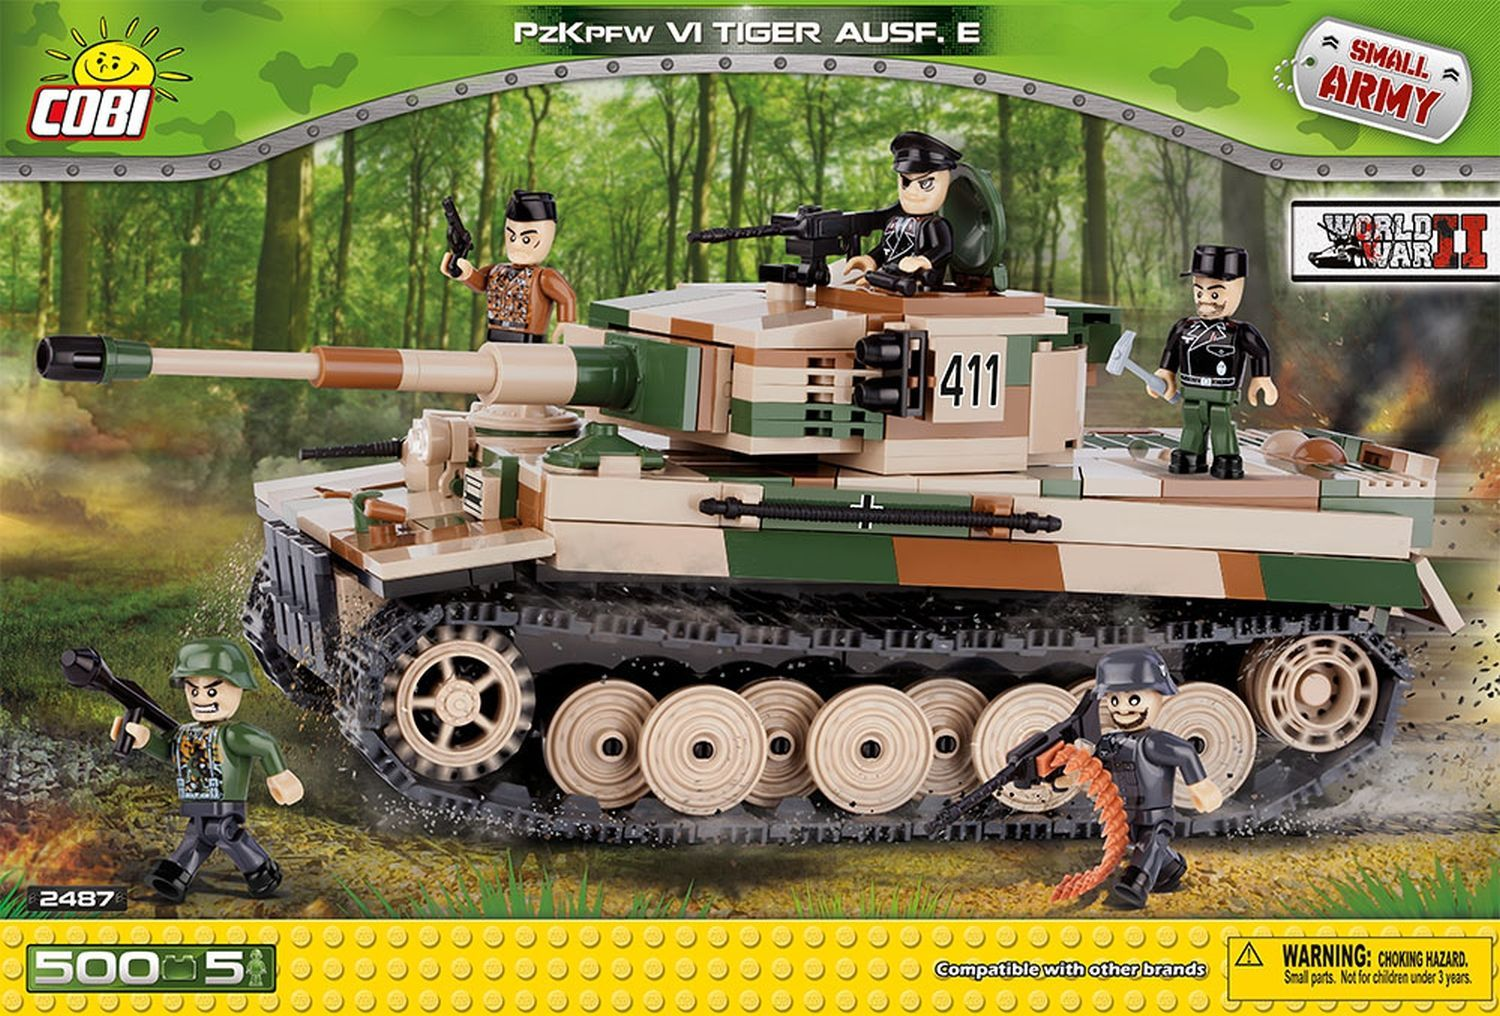 2487_Cobi_2.WK_Tiger_1_www.super-bricks.de_12_Cobi_2.WK_www-super-bricks.de